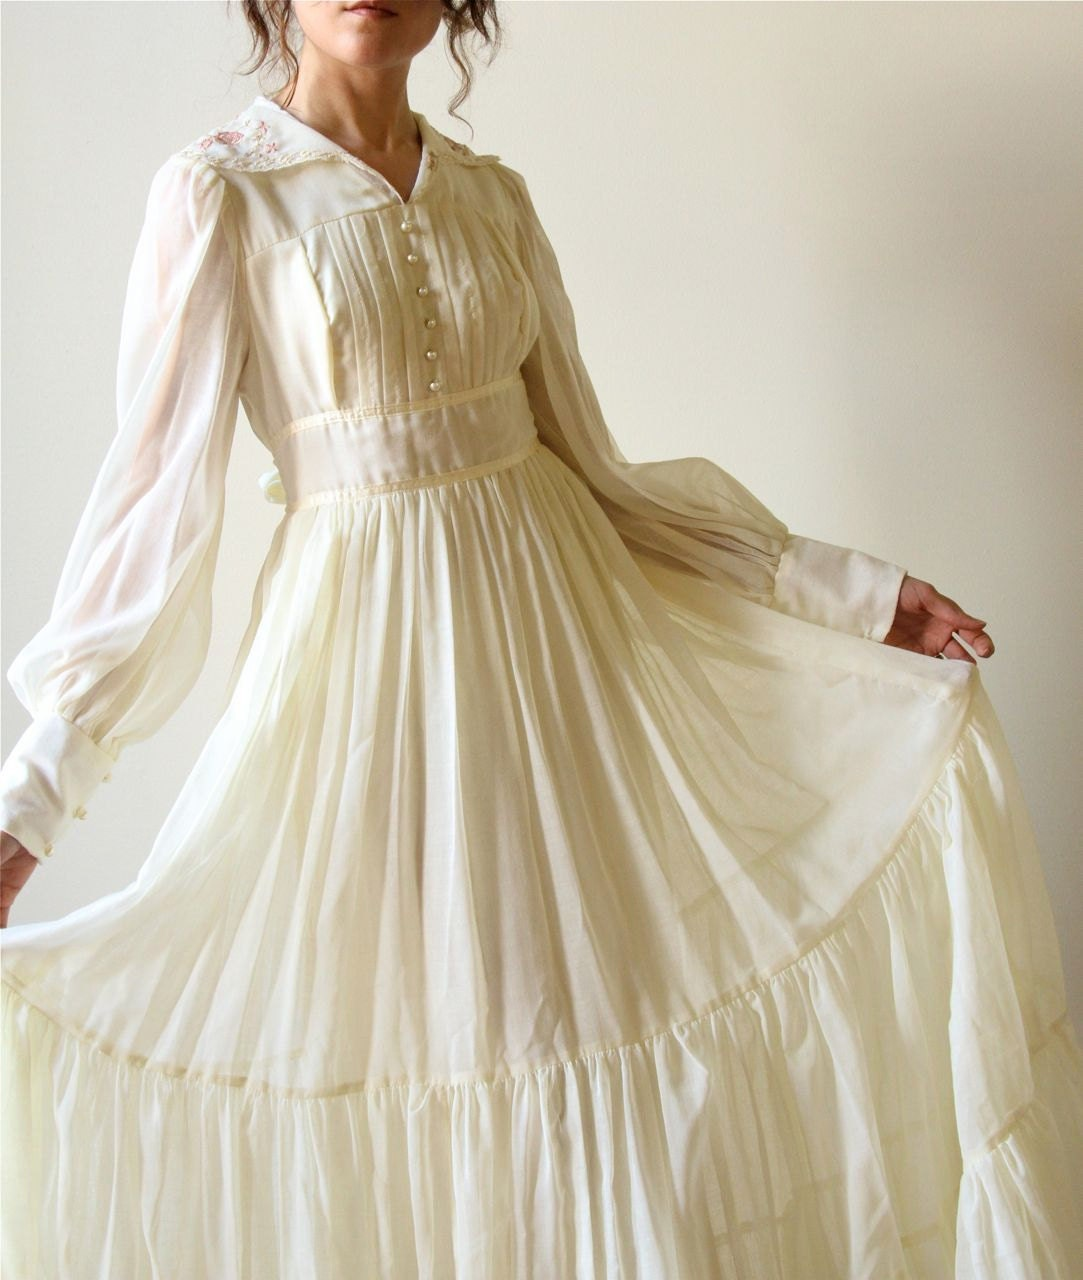 70s gunne sax boho wedding dress vintage ivory bone Hippie vintage wedding dresses